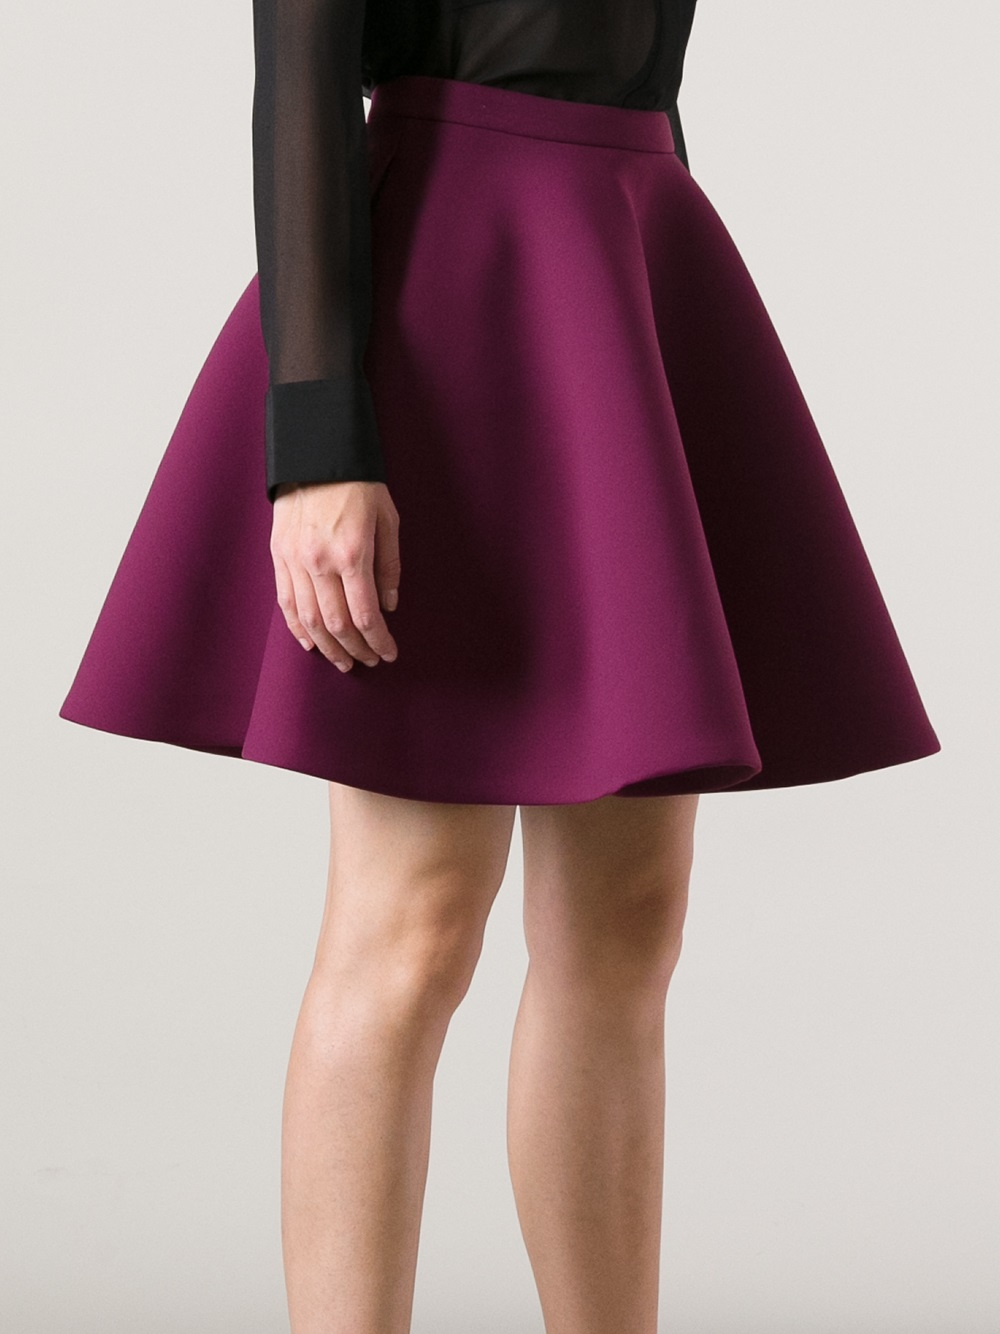 Free shipping and returns on Women's Purple Skirts at downloadsolutionspa5tr.gq